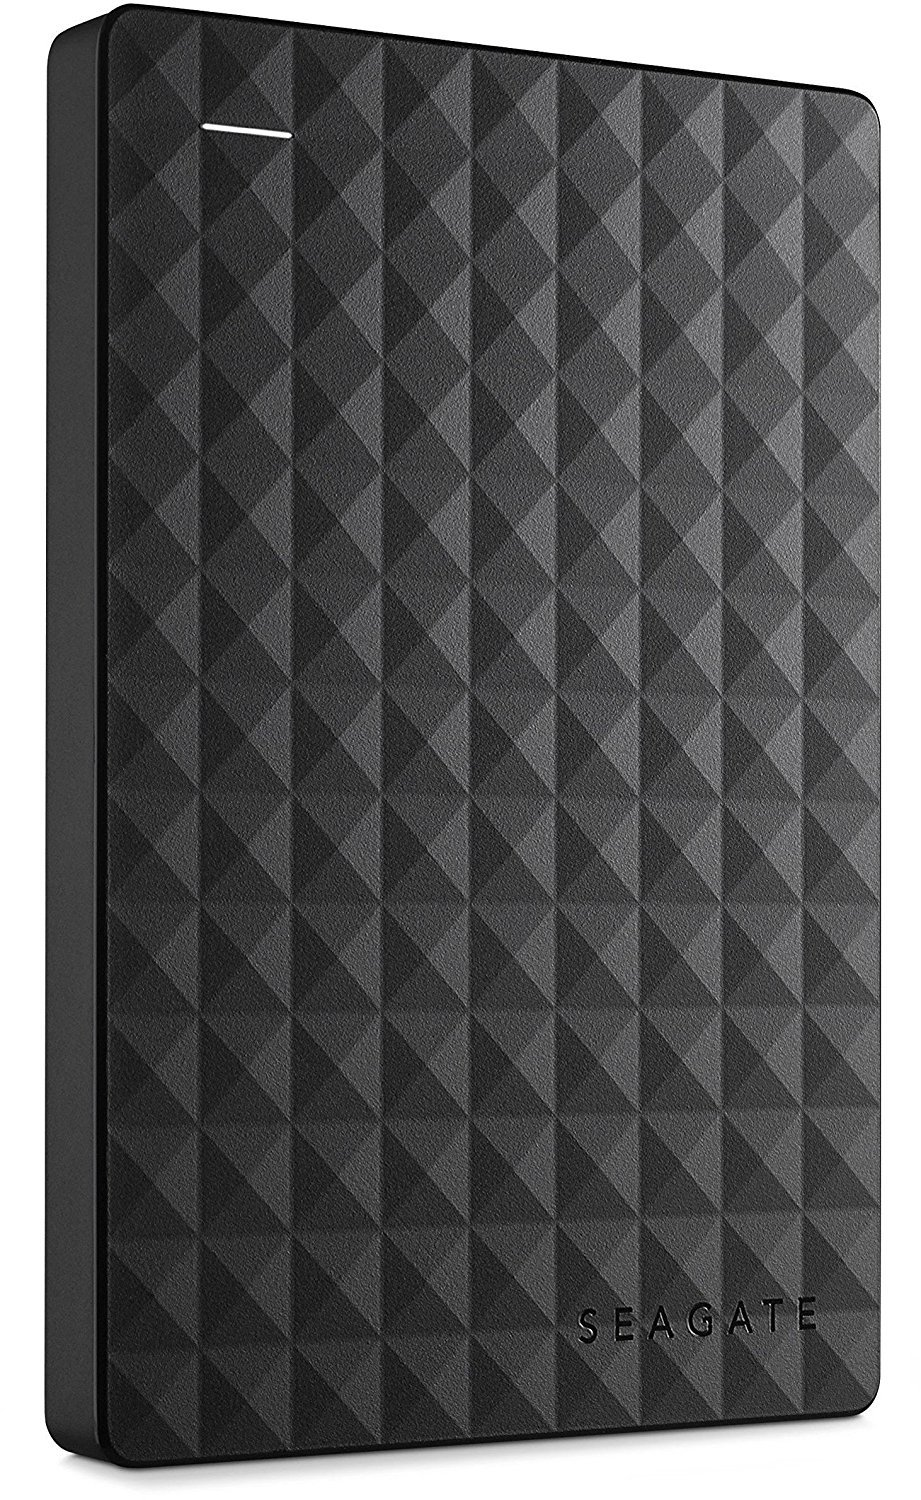 Seagate Expansion Portable USB 3.0 2.5in 1TB External Hard Drive - STEA1000400 (Renewed) by Seagate (Image #3)